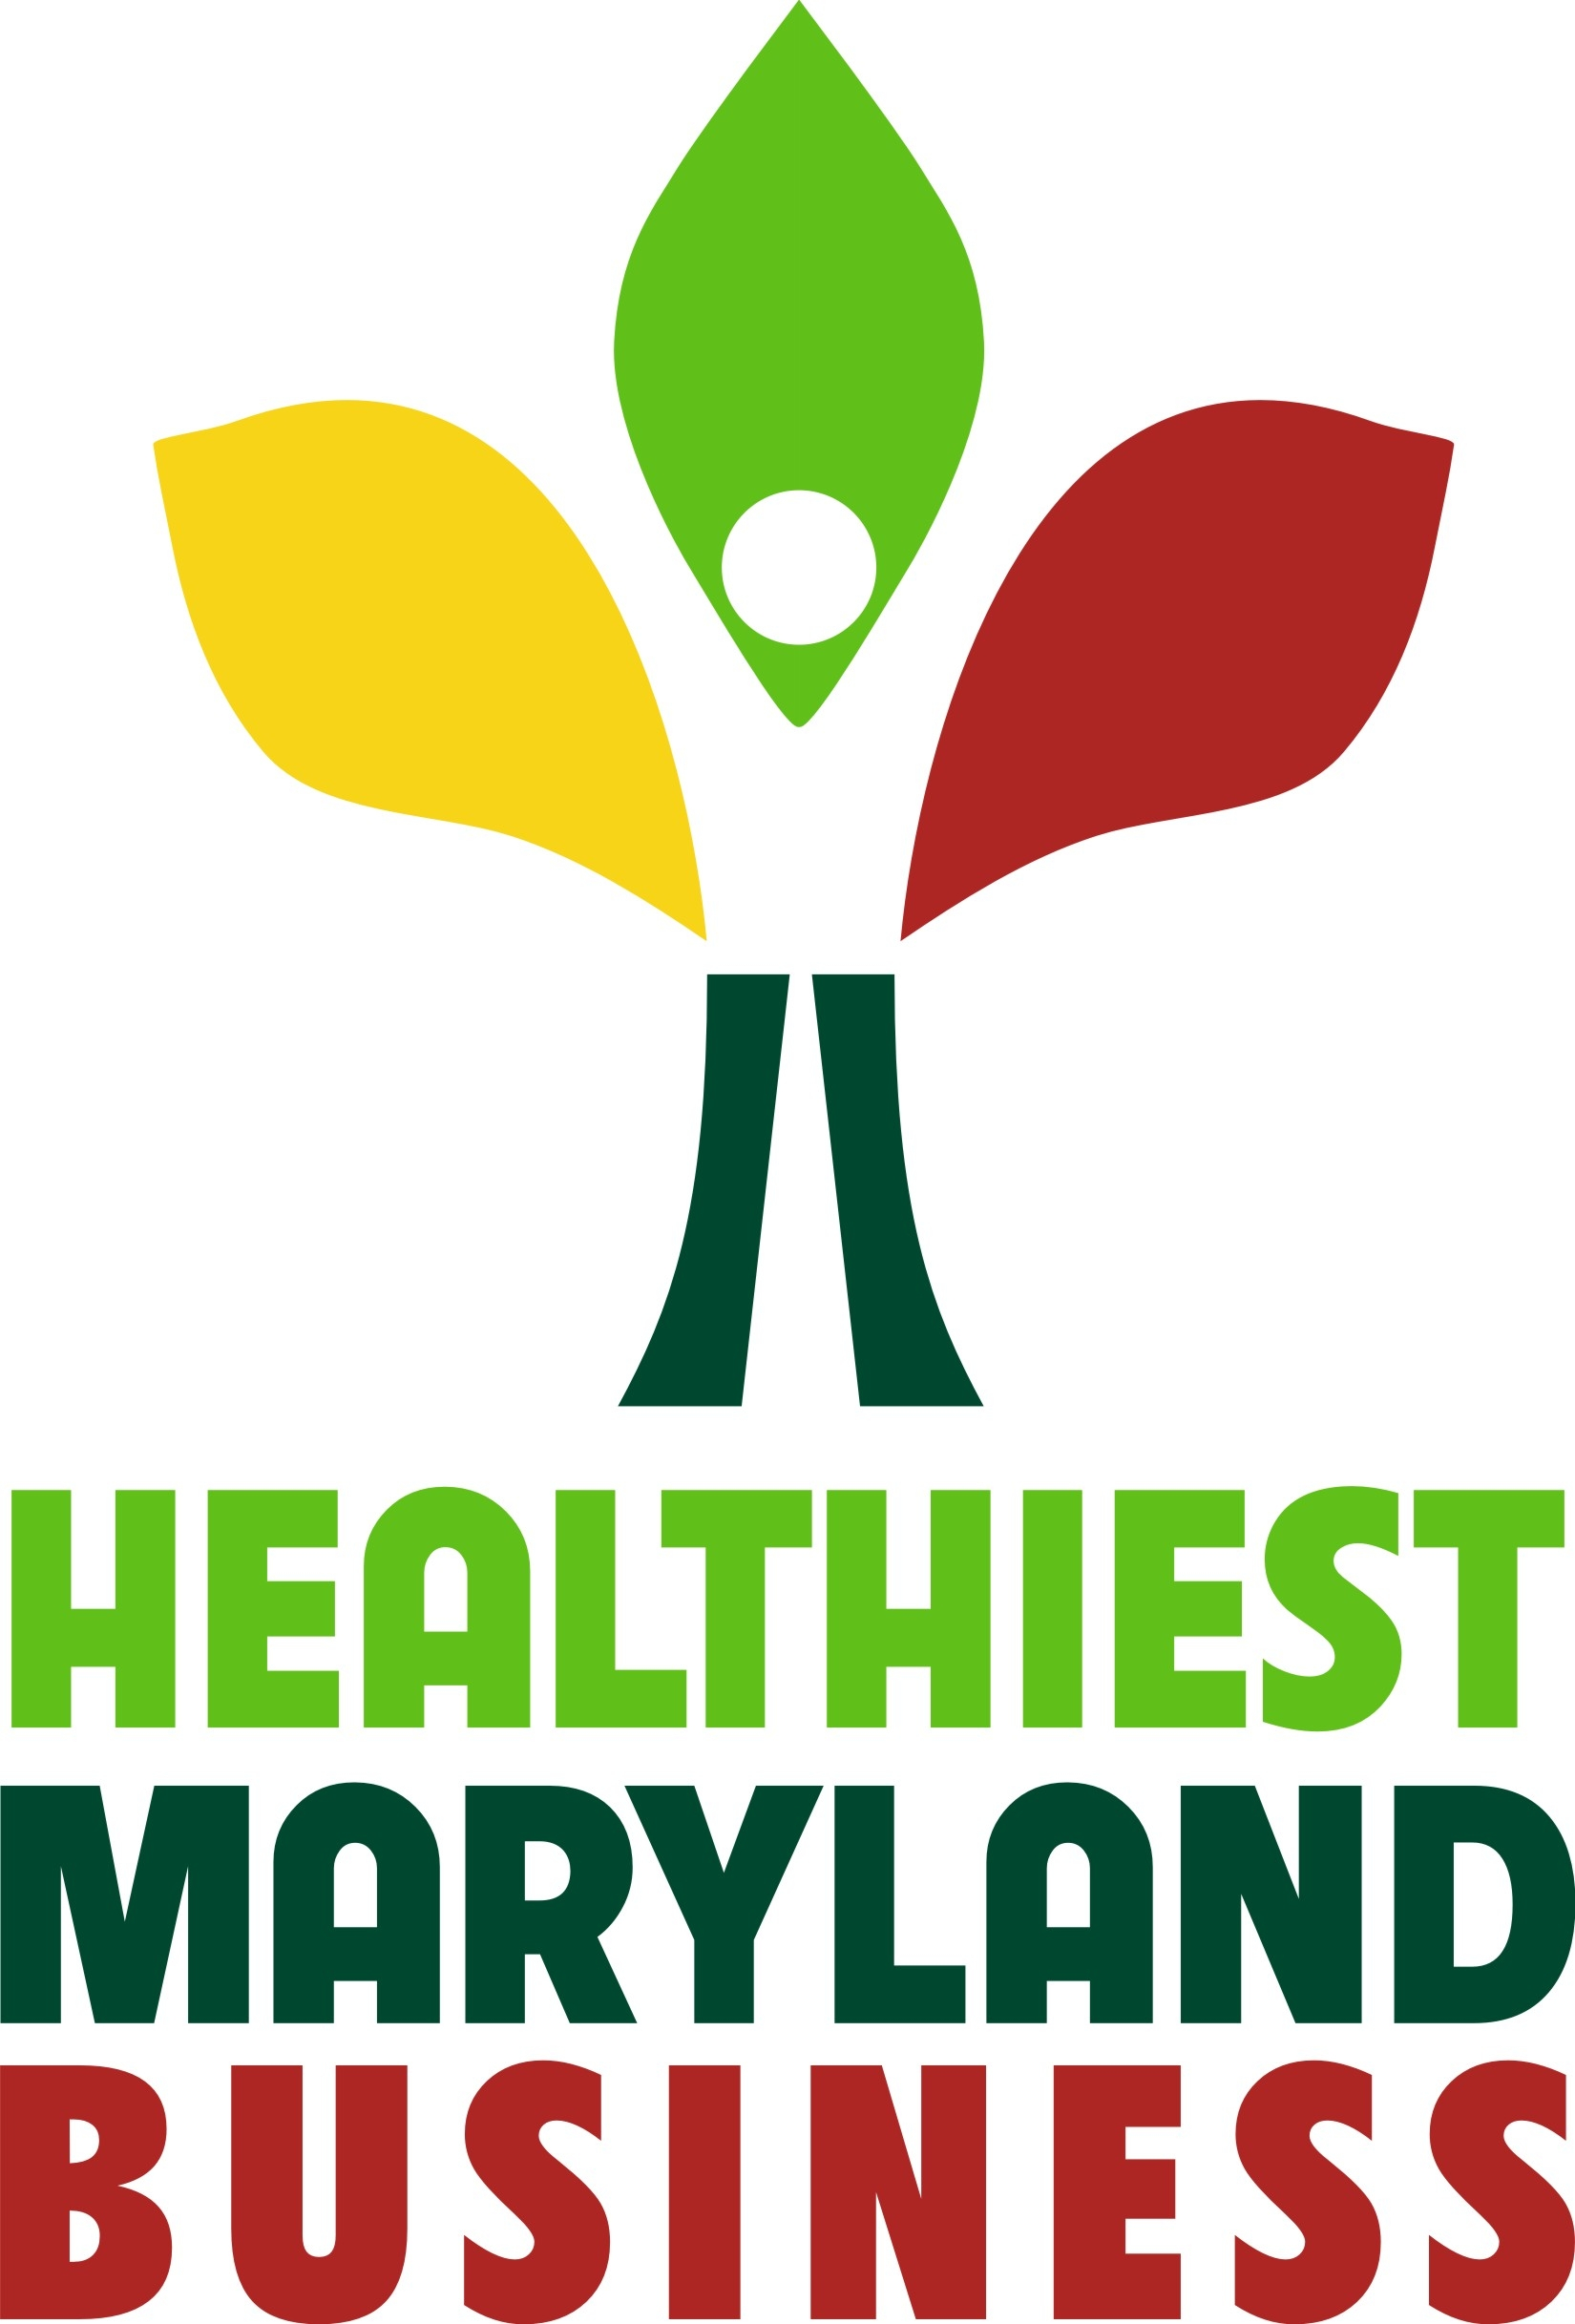 Healthiest Maryland Business Logo.JPG